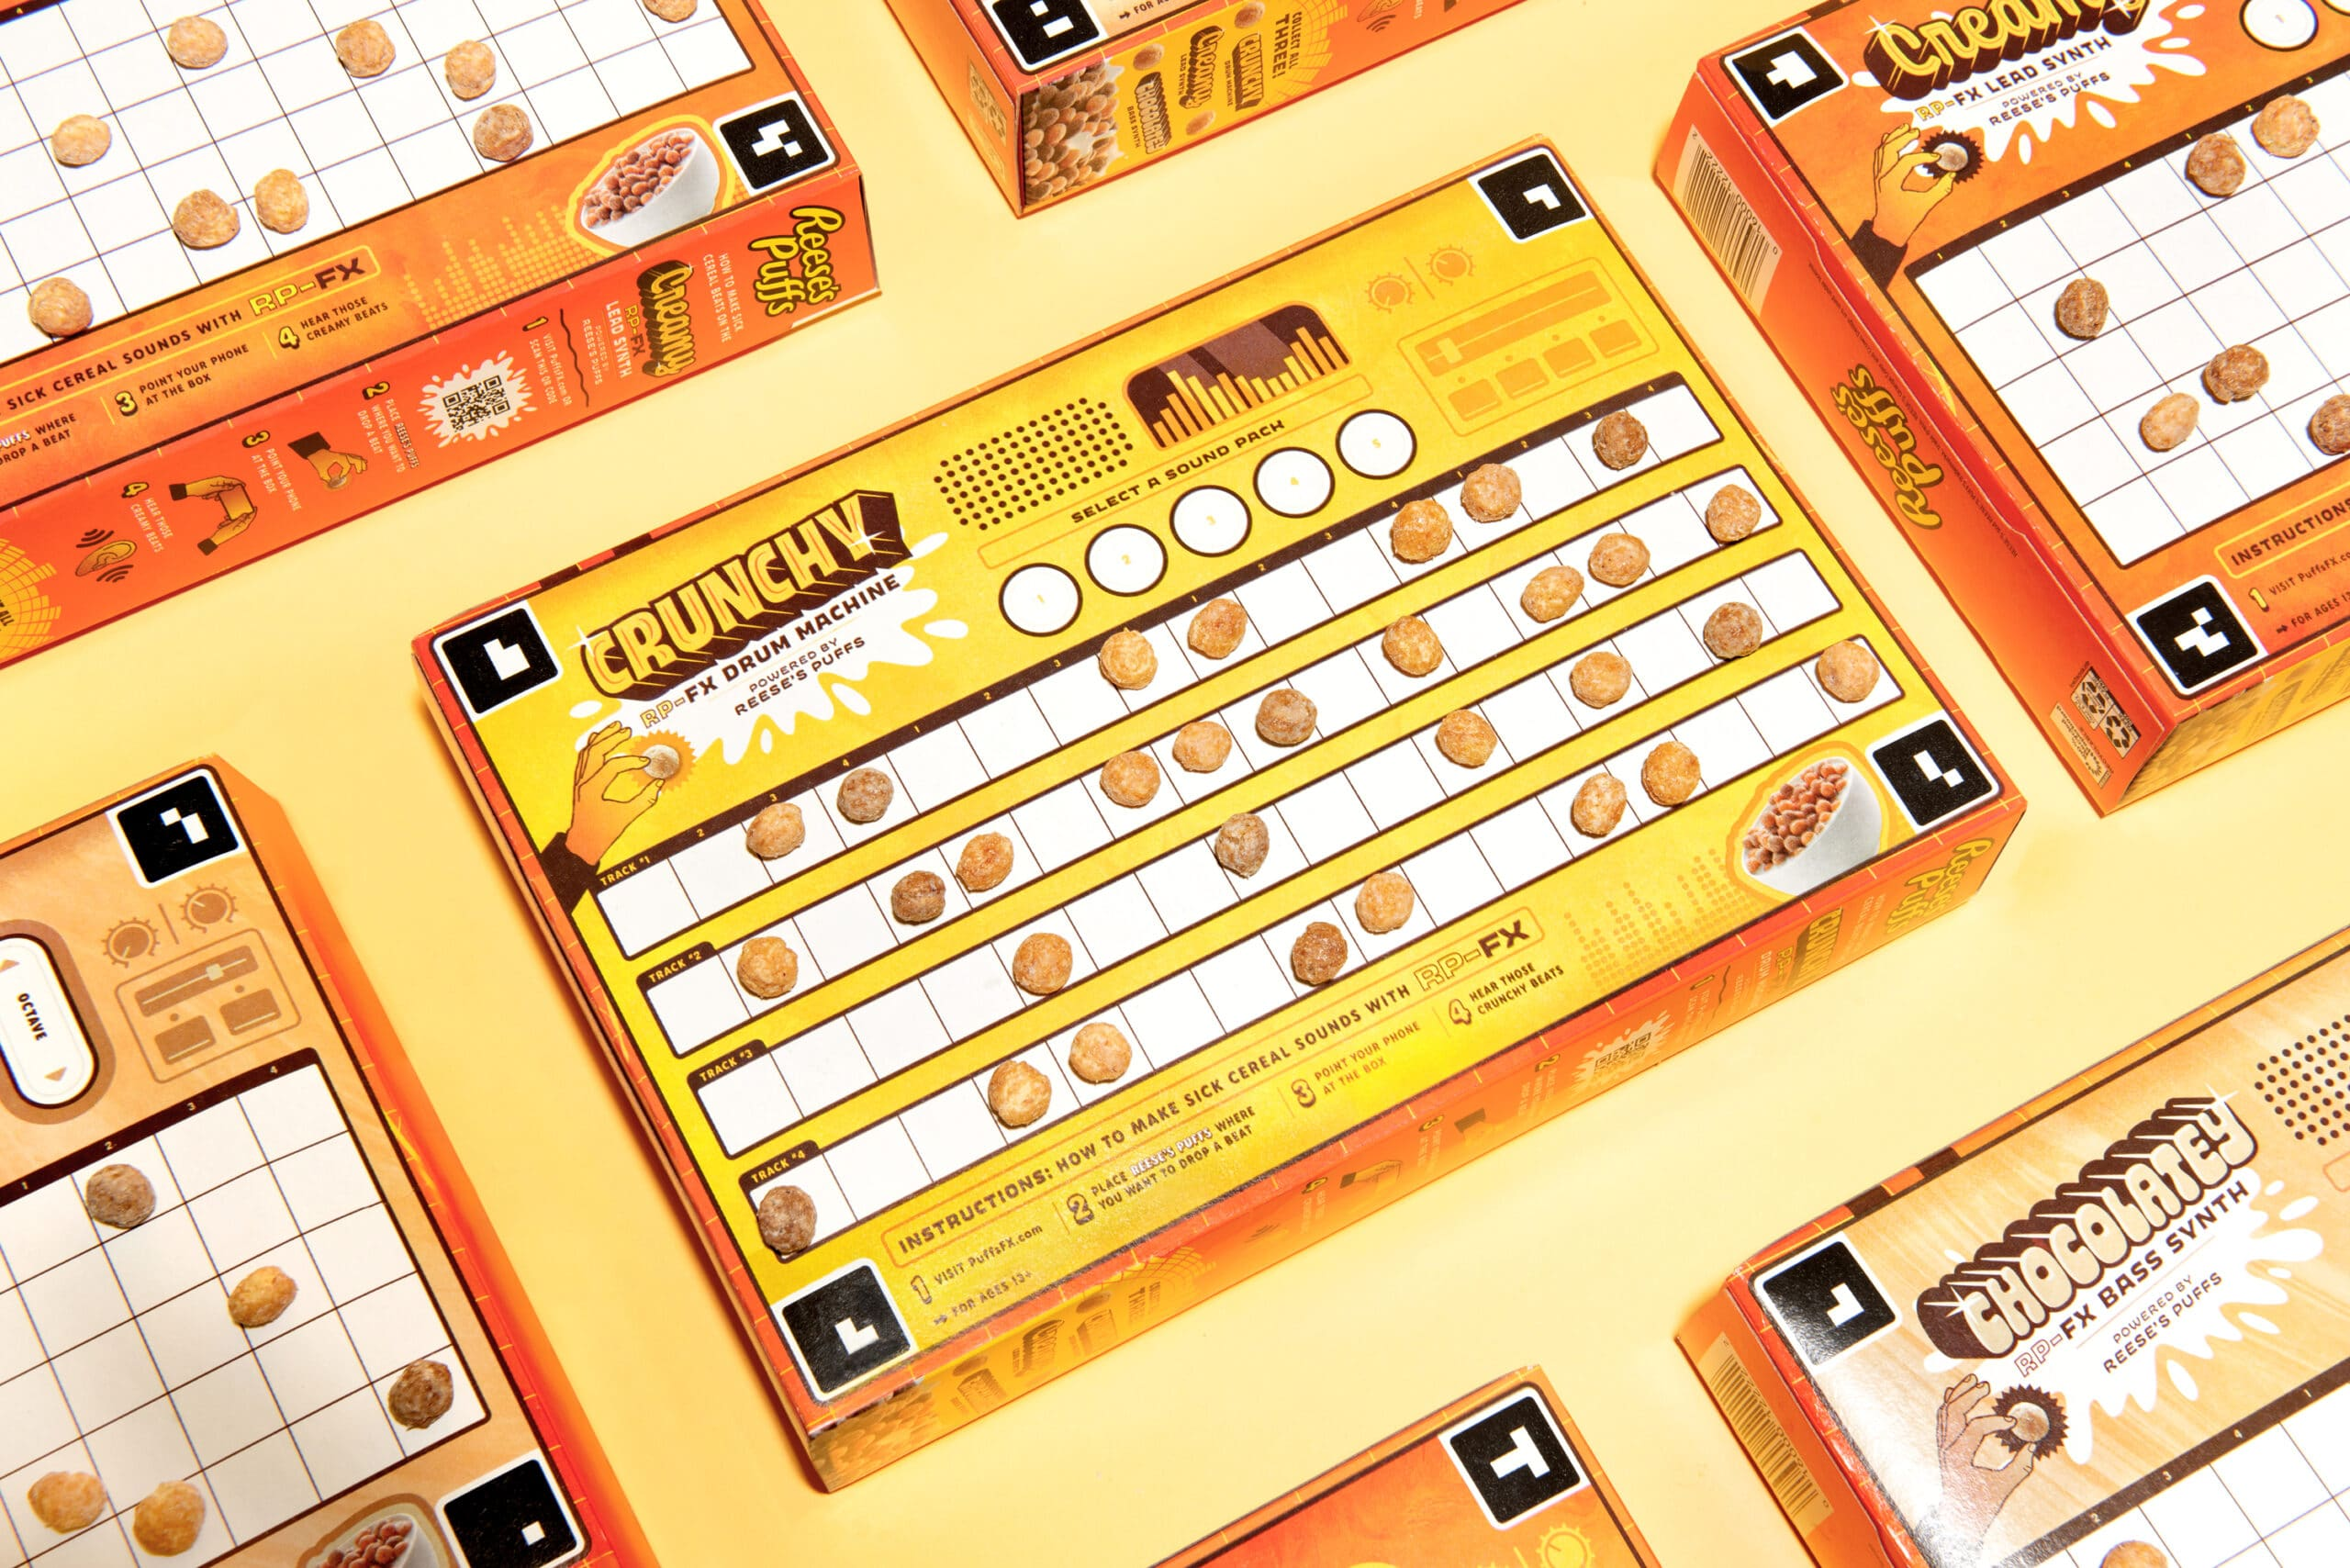 These Reese's Puffs cereal boxes let fans create their own music tracks 18